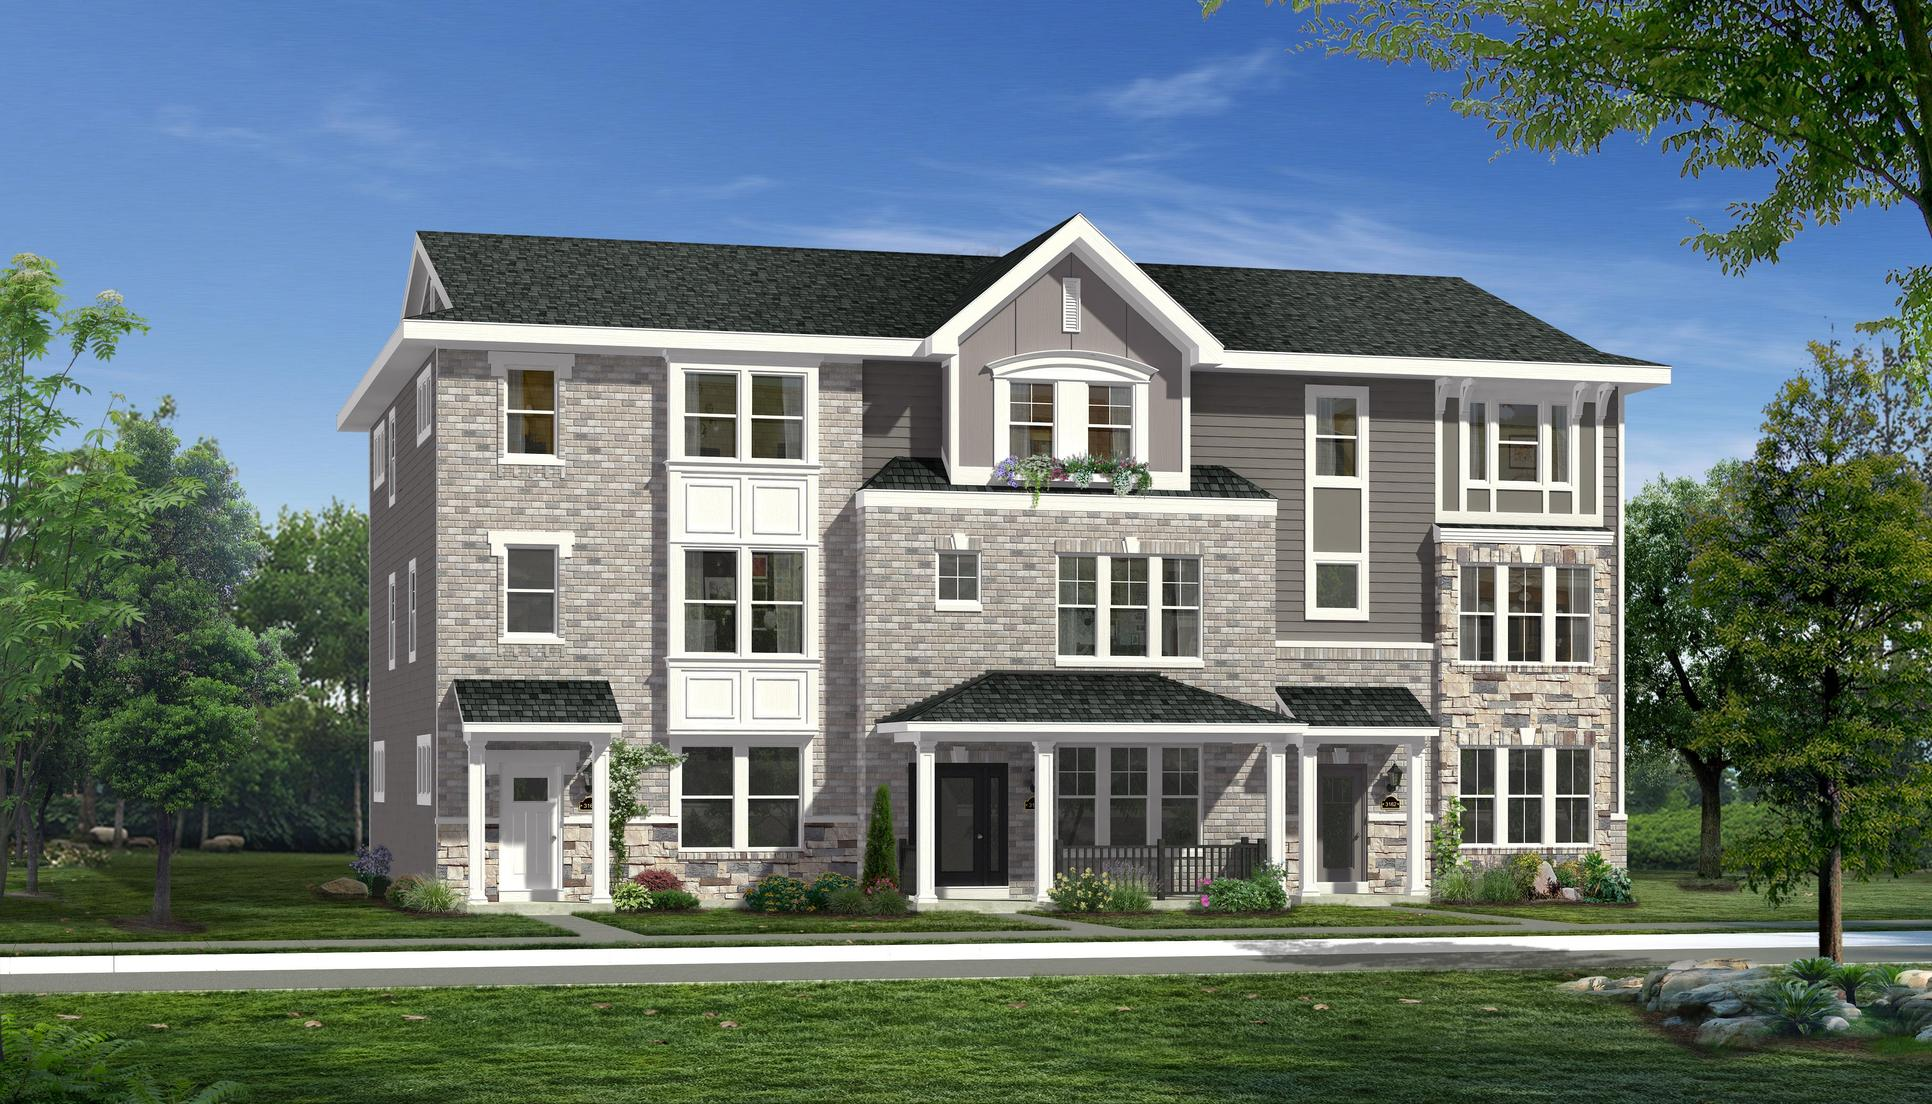 The Avondale - Uptown Townhomes Coming Soon to Talamore Square:The Avondale - Uptown Townhomes Coming Soon to Talamore Square